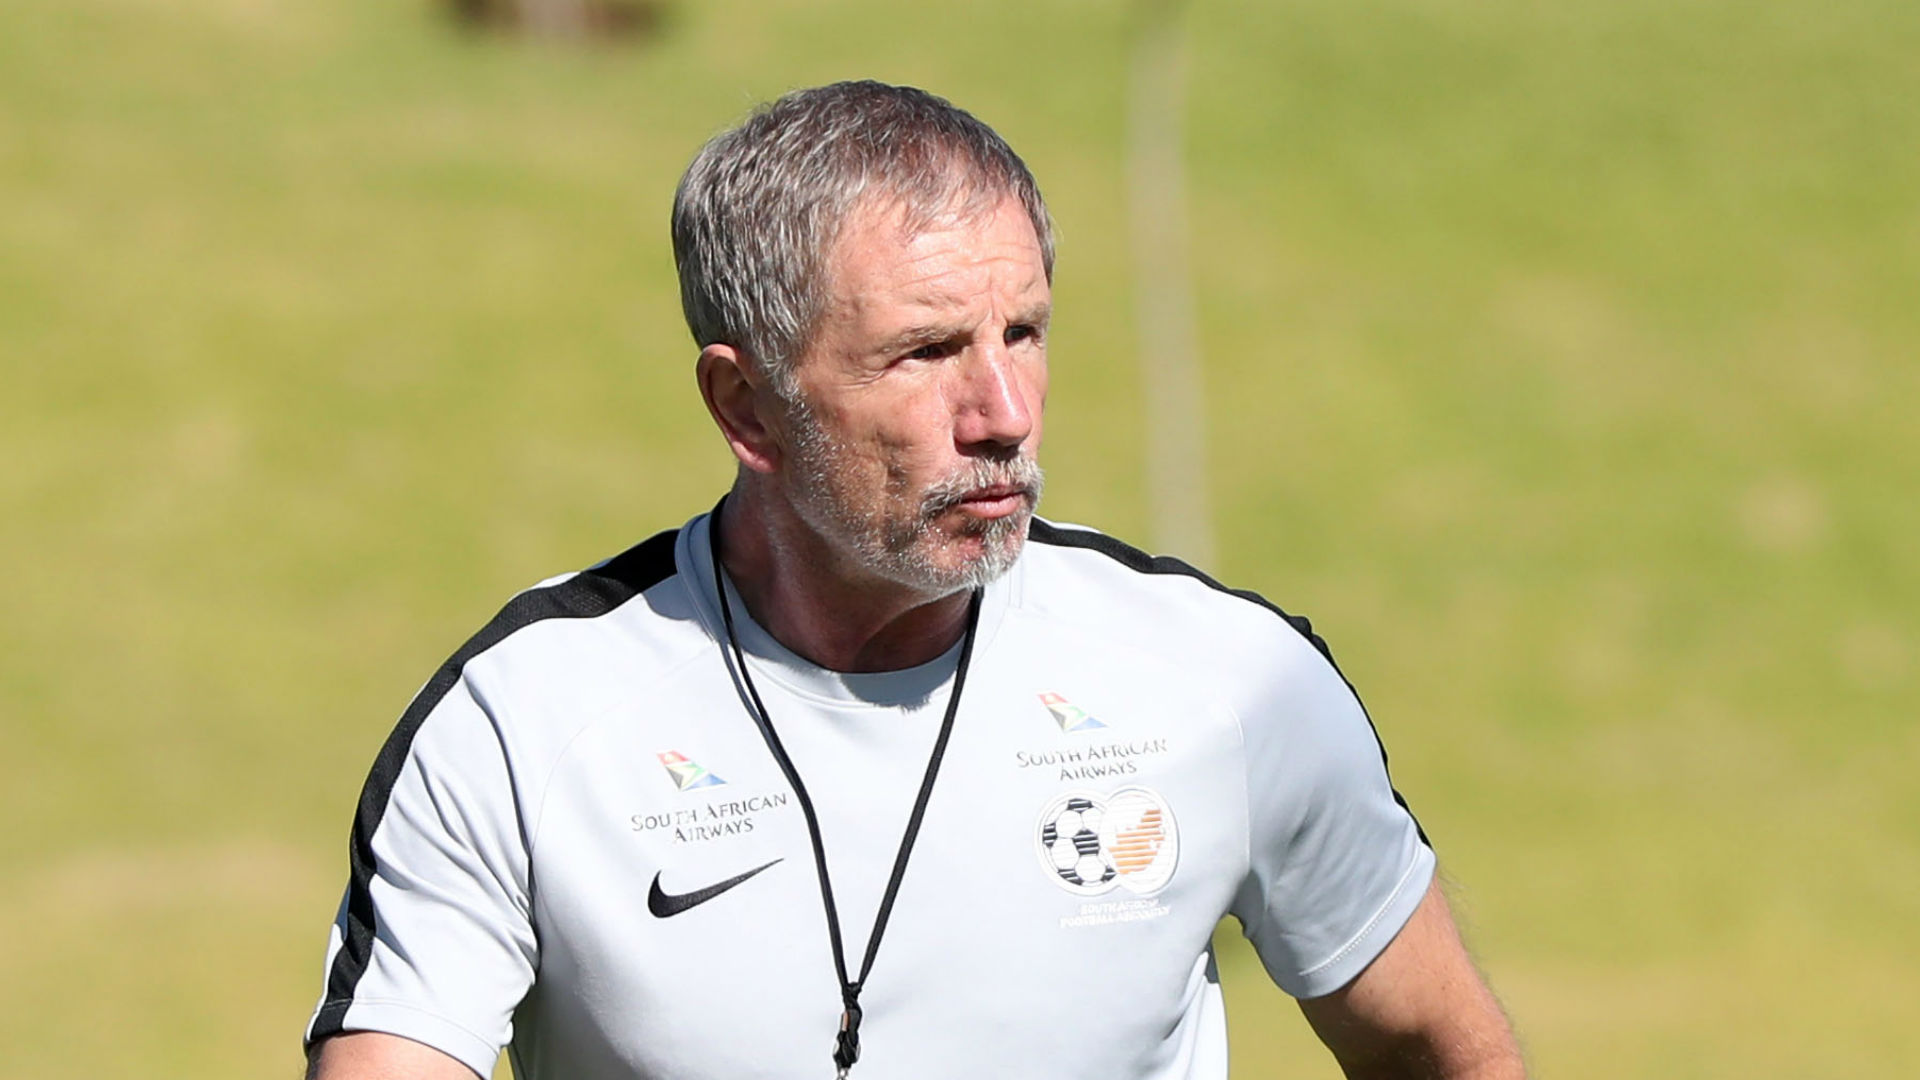 South Africa head coach Stuart Baxter June 18